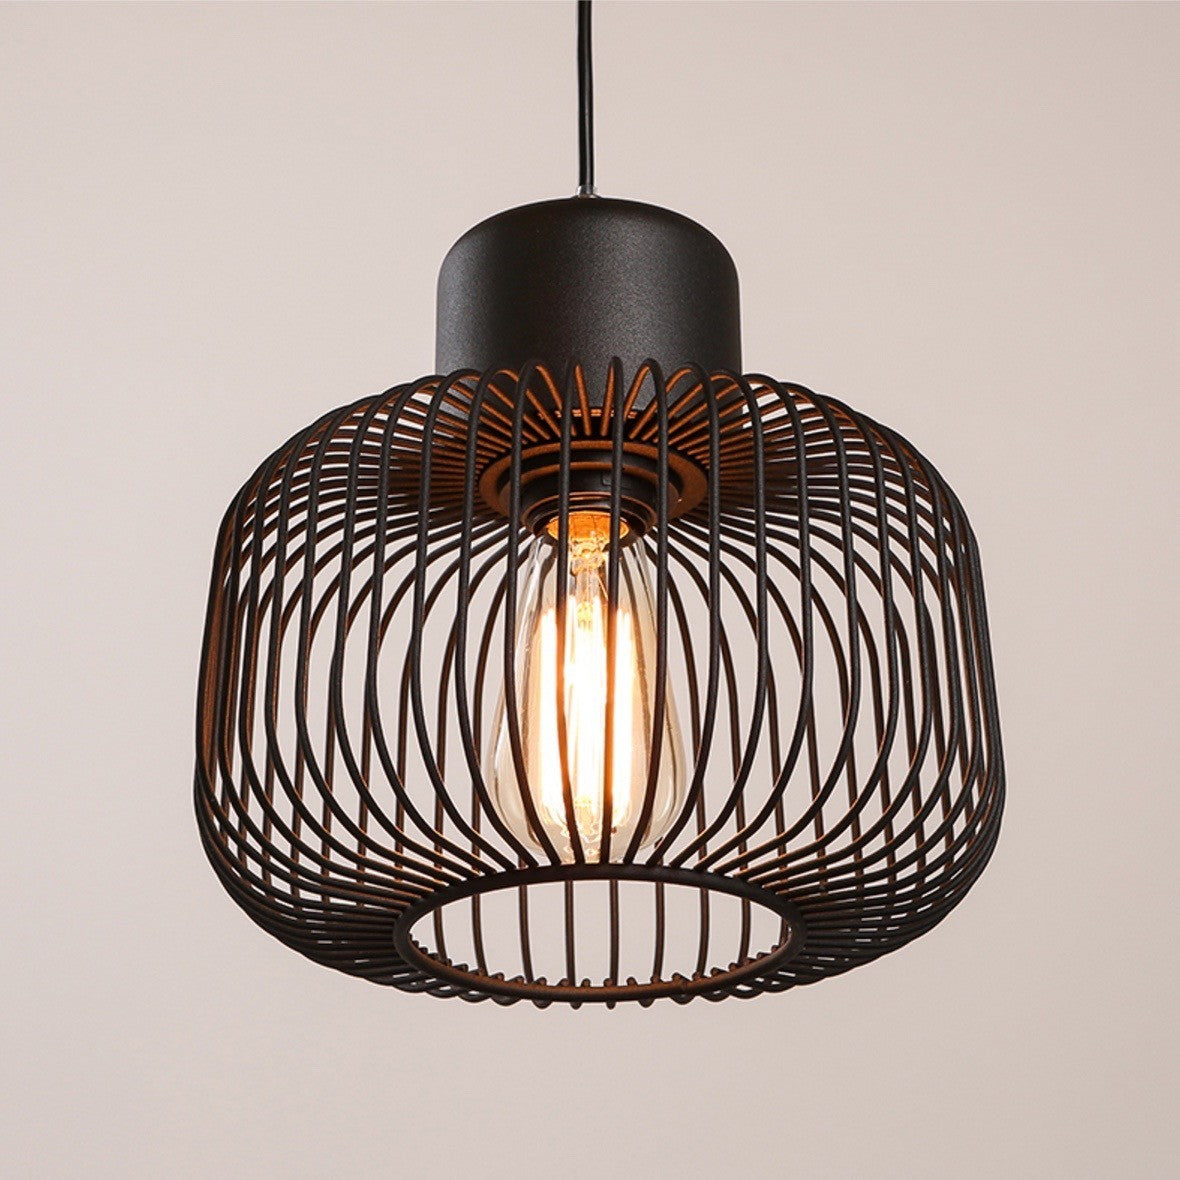 The Peak Of Très Chic Kitchen Light: Buy Modern Cage Pendant Lights At 20% Off